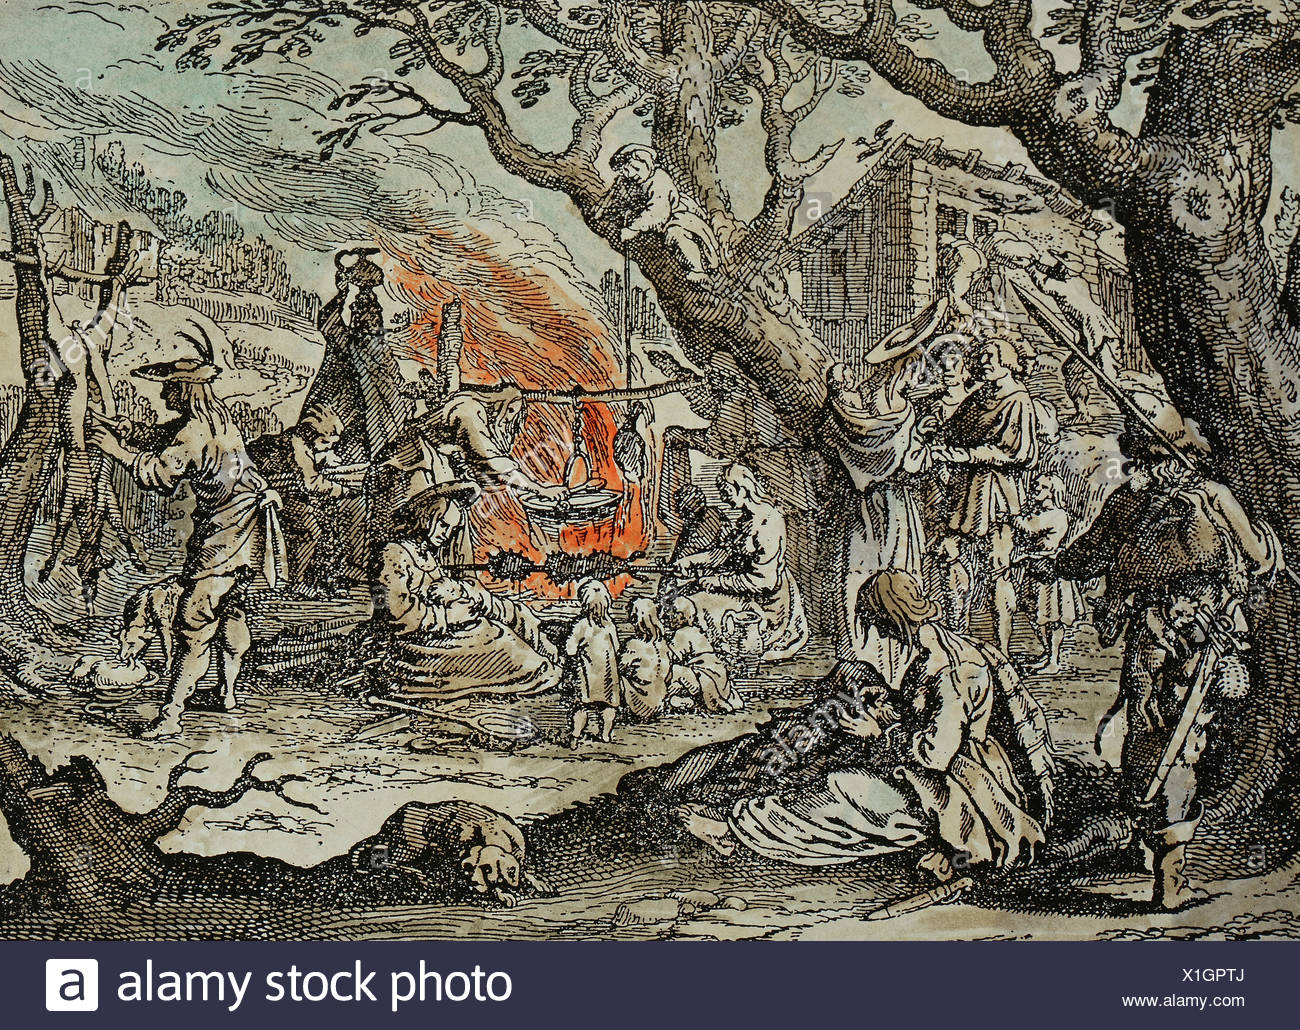 people, Sinti and Romanies, 'Gipsy Camp', copper engraving, coloured, German, 17th century, private collection, Artist's Copyright has not to be cleared - Stock Image